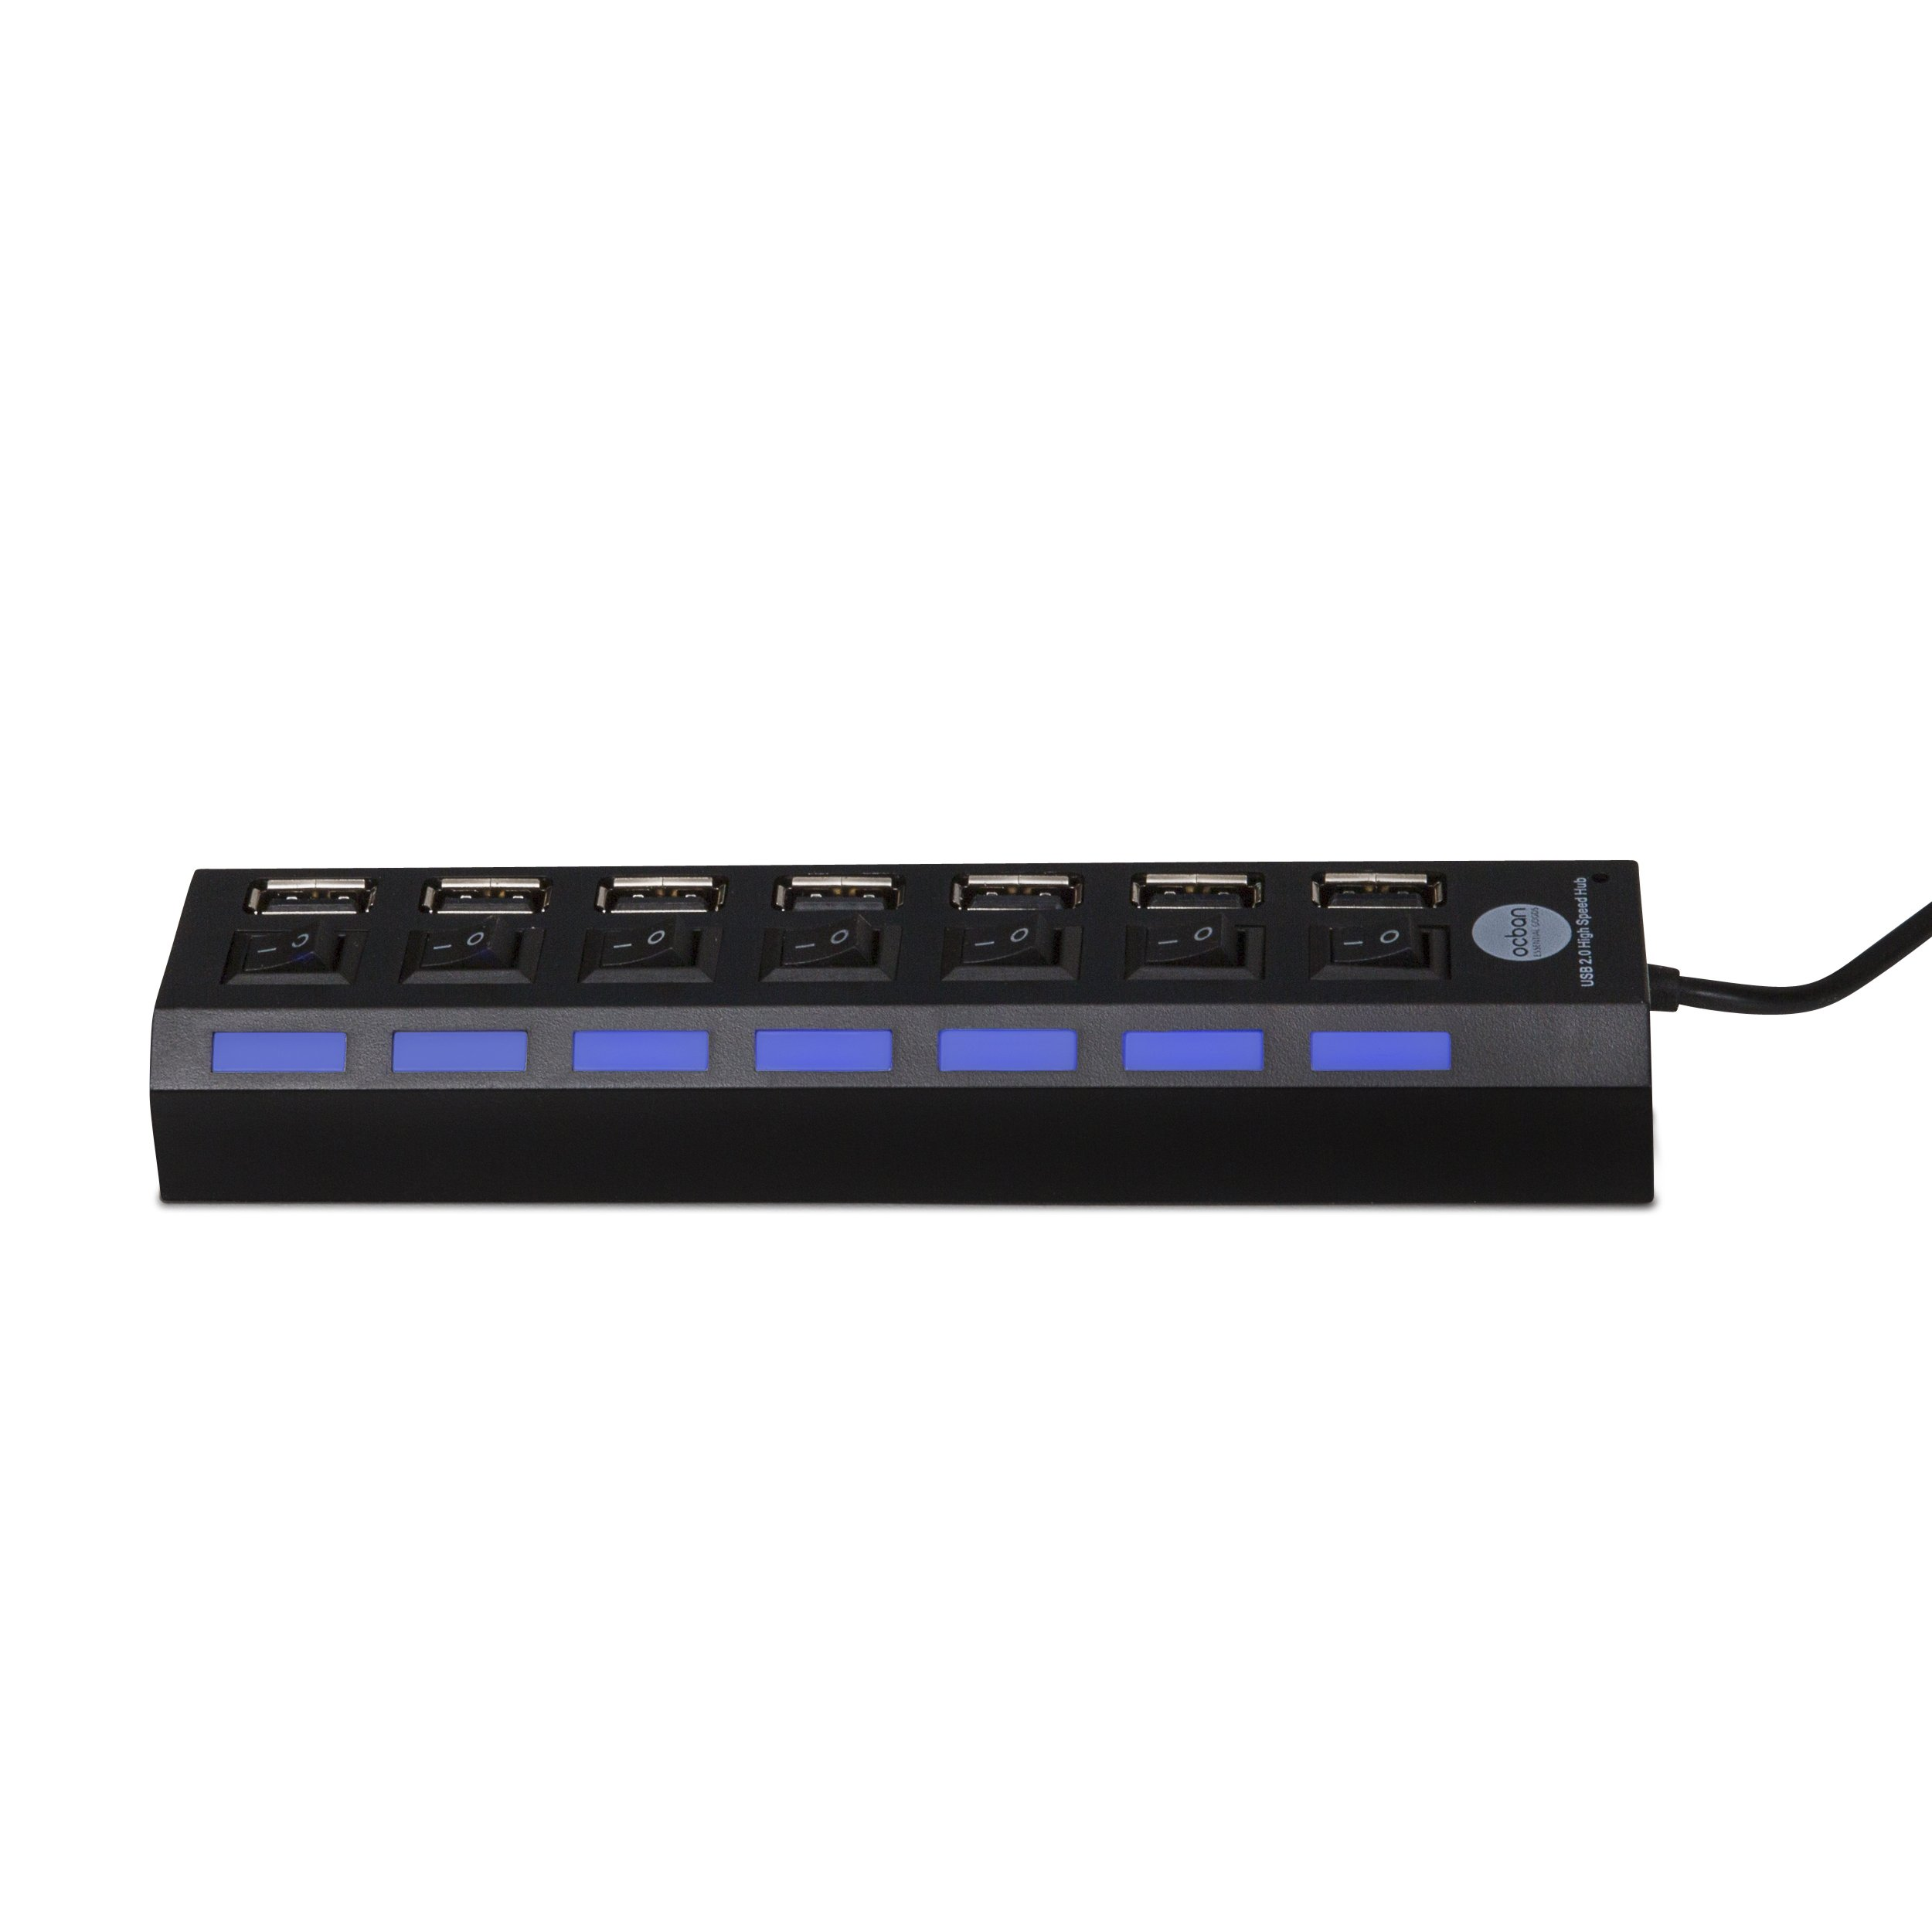 7 Port USB 2.0 Hub with Individual Power Switches and LEDs On Off Switch Design Slim Compact Lightweight Fast Communication For PC Linux Mac Windows Smarts Tvs Accessory Travel Great Price OCBAN by Ocban (Image #3)